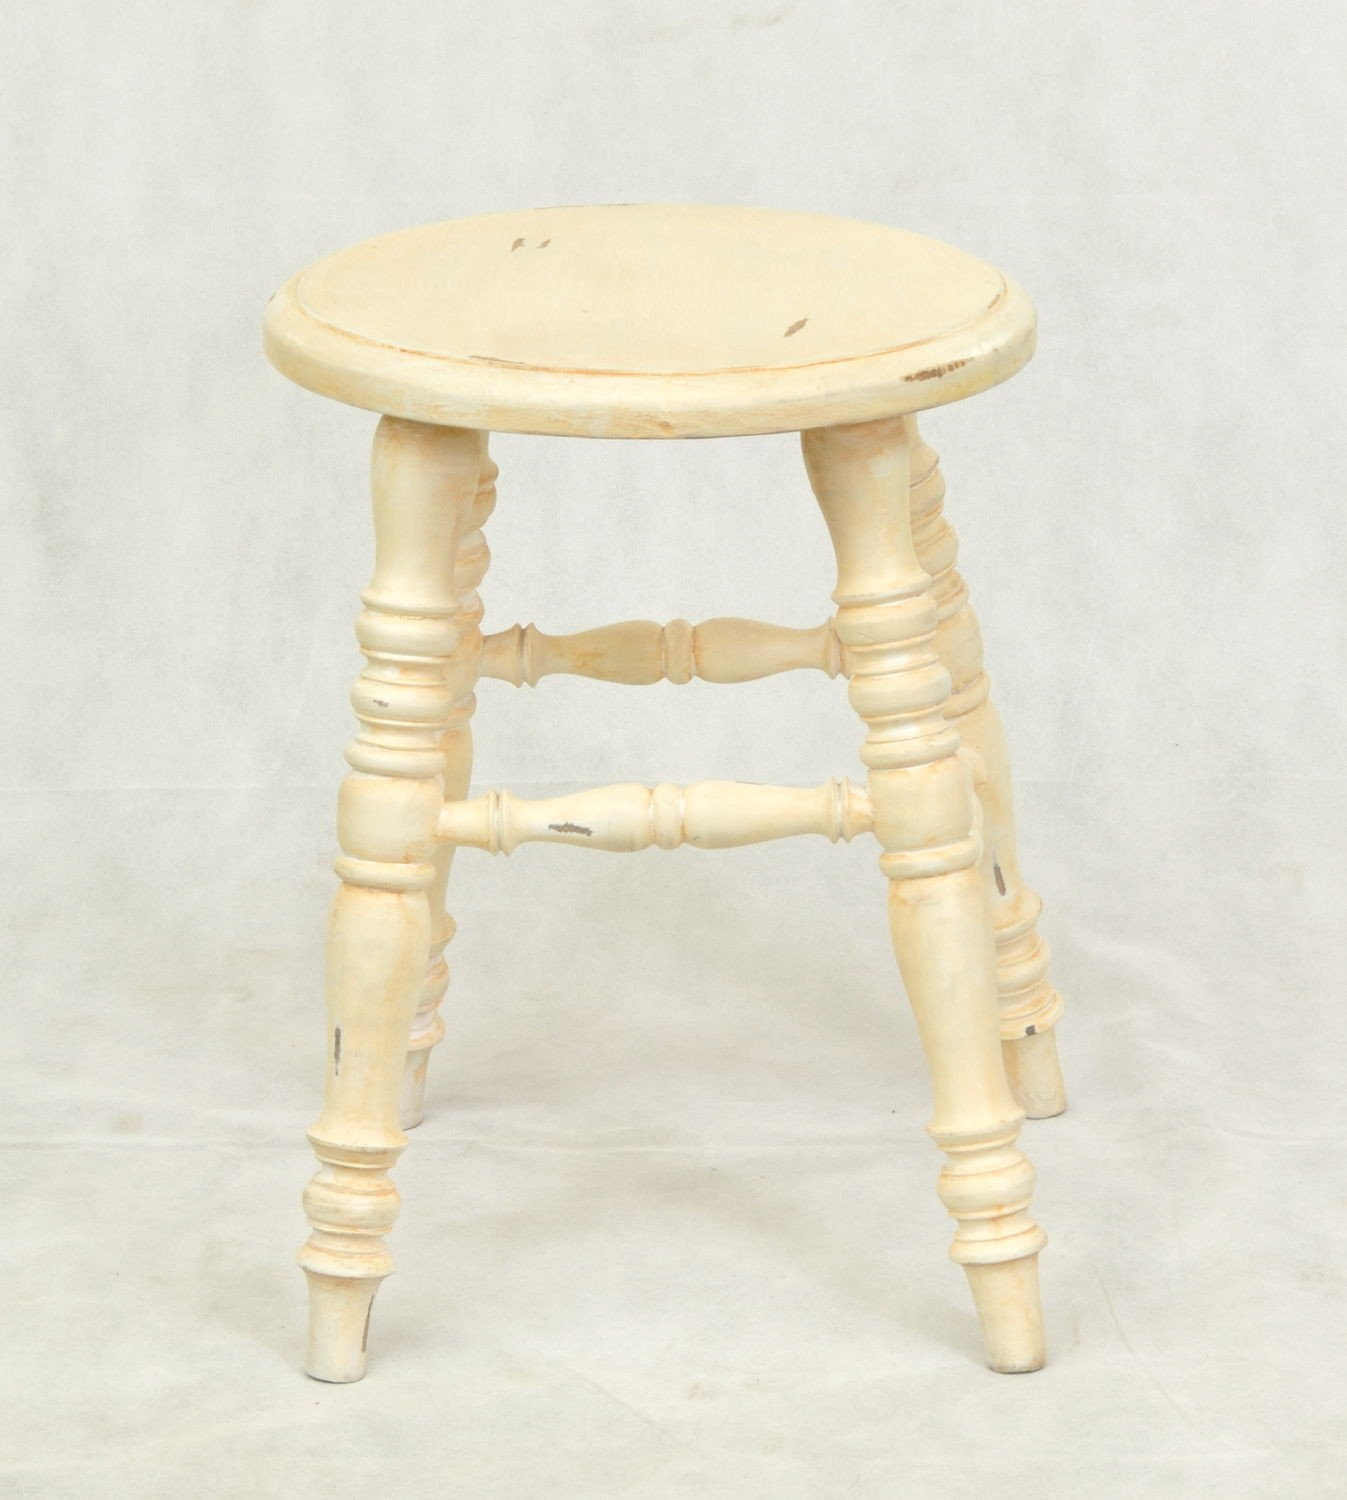 small round wooden stool with a distressed painted finish